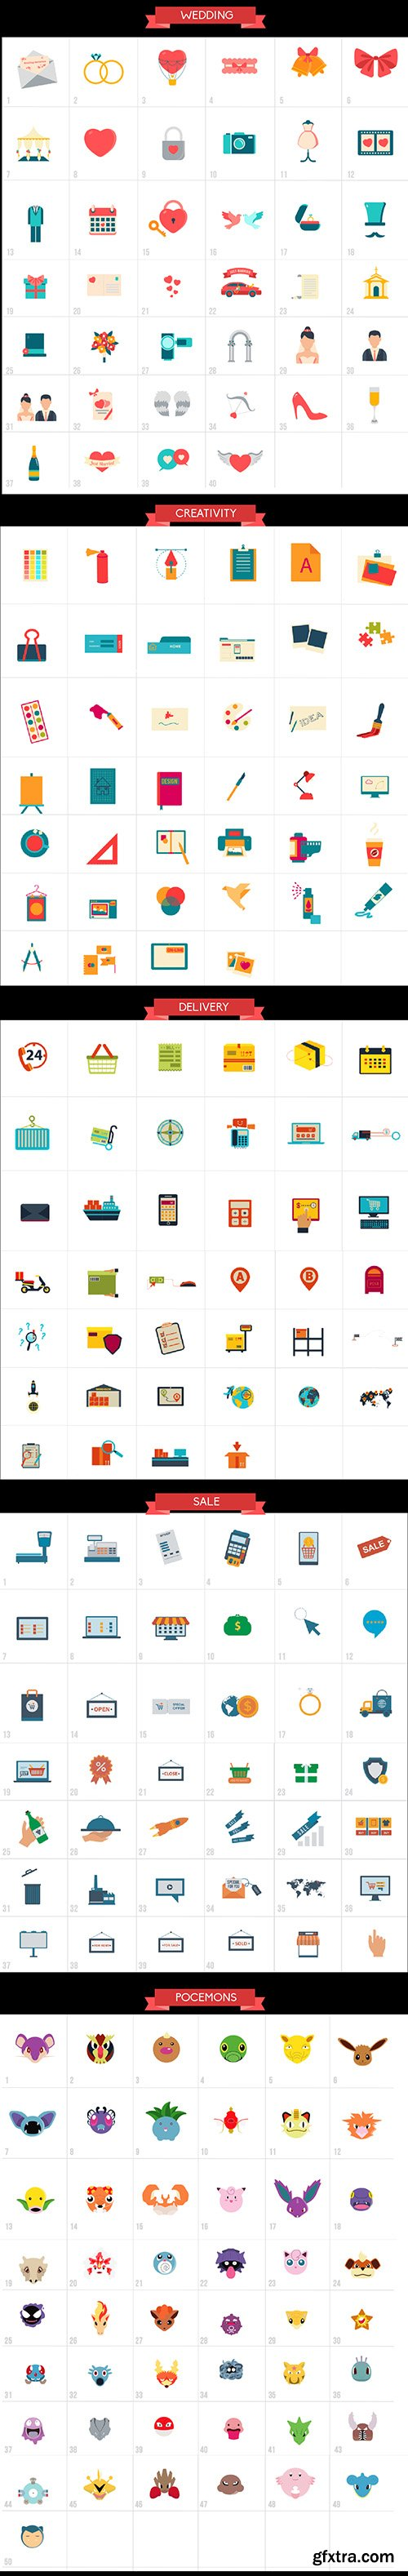 Videohive 2300 Animated Icons Pack 18383303